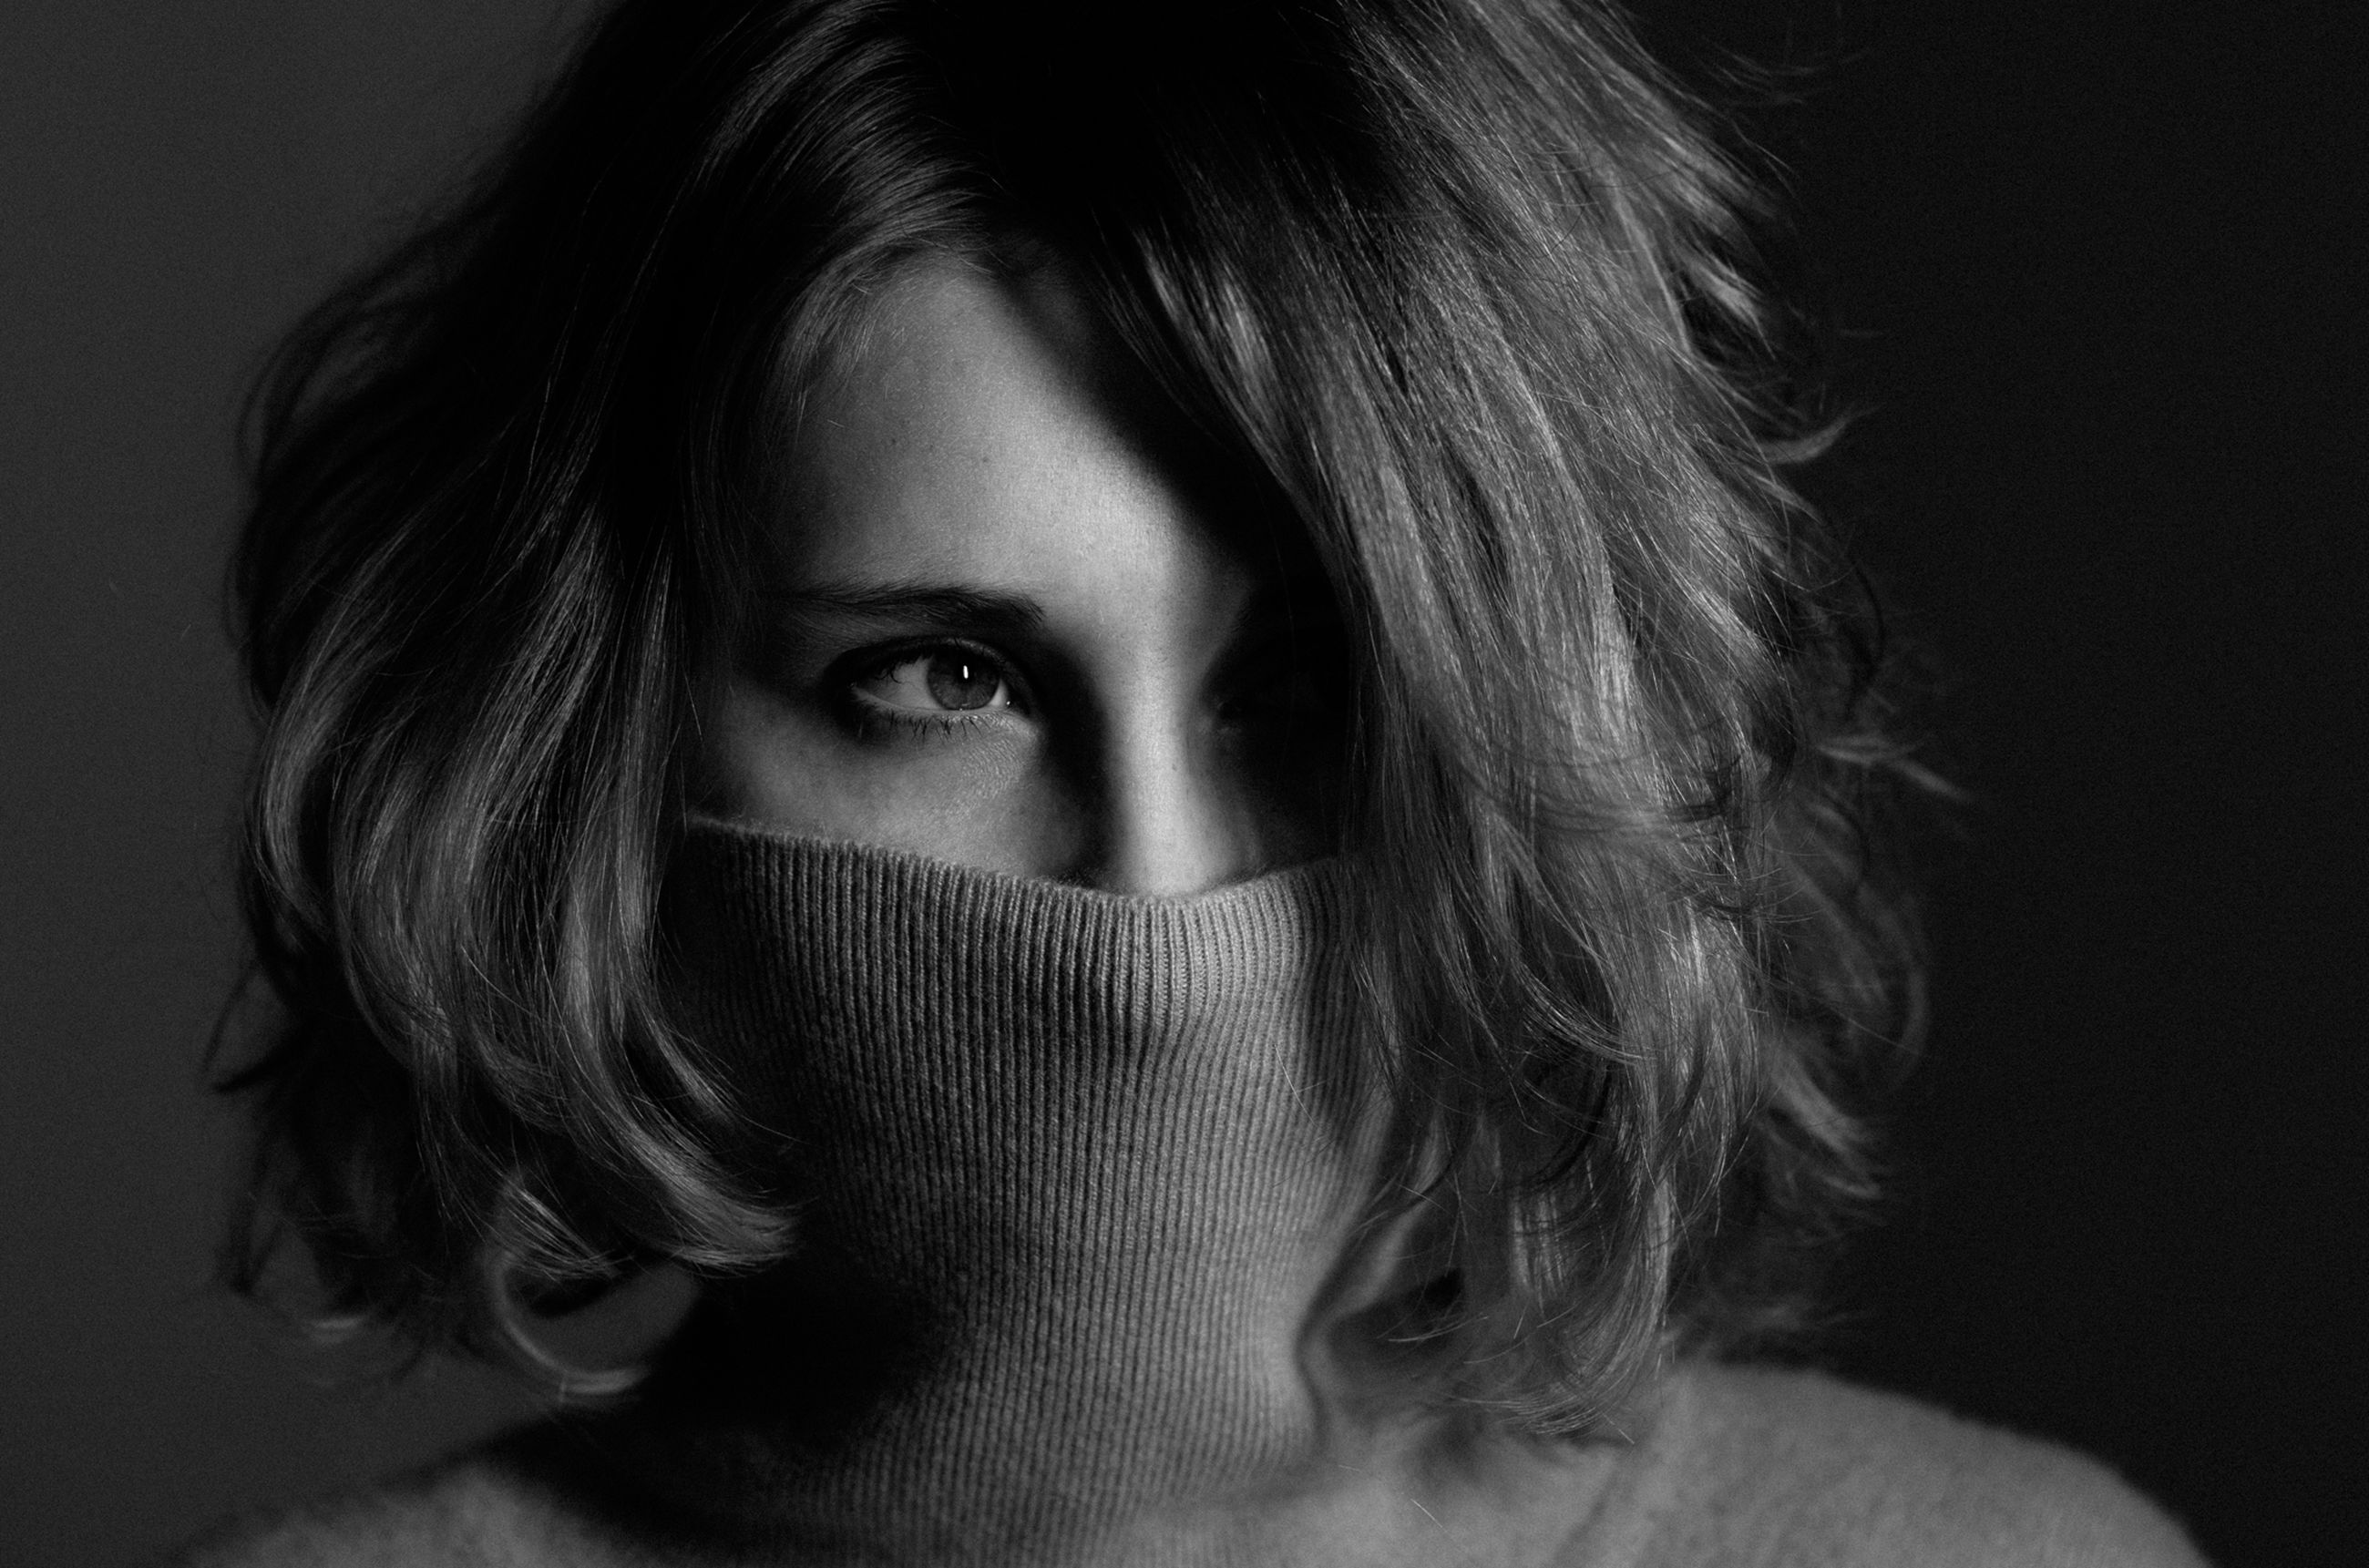 CLOSE-UP OF A YOUNG WOMAN COVERING FACE WITH EYES